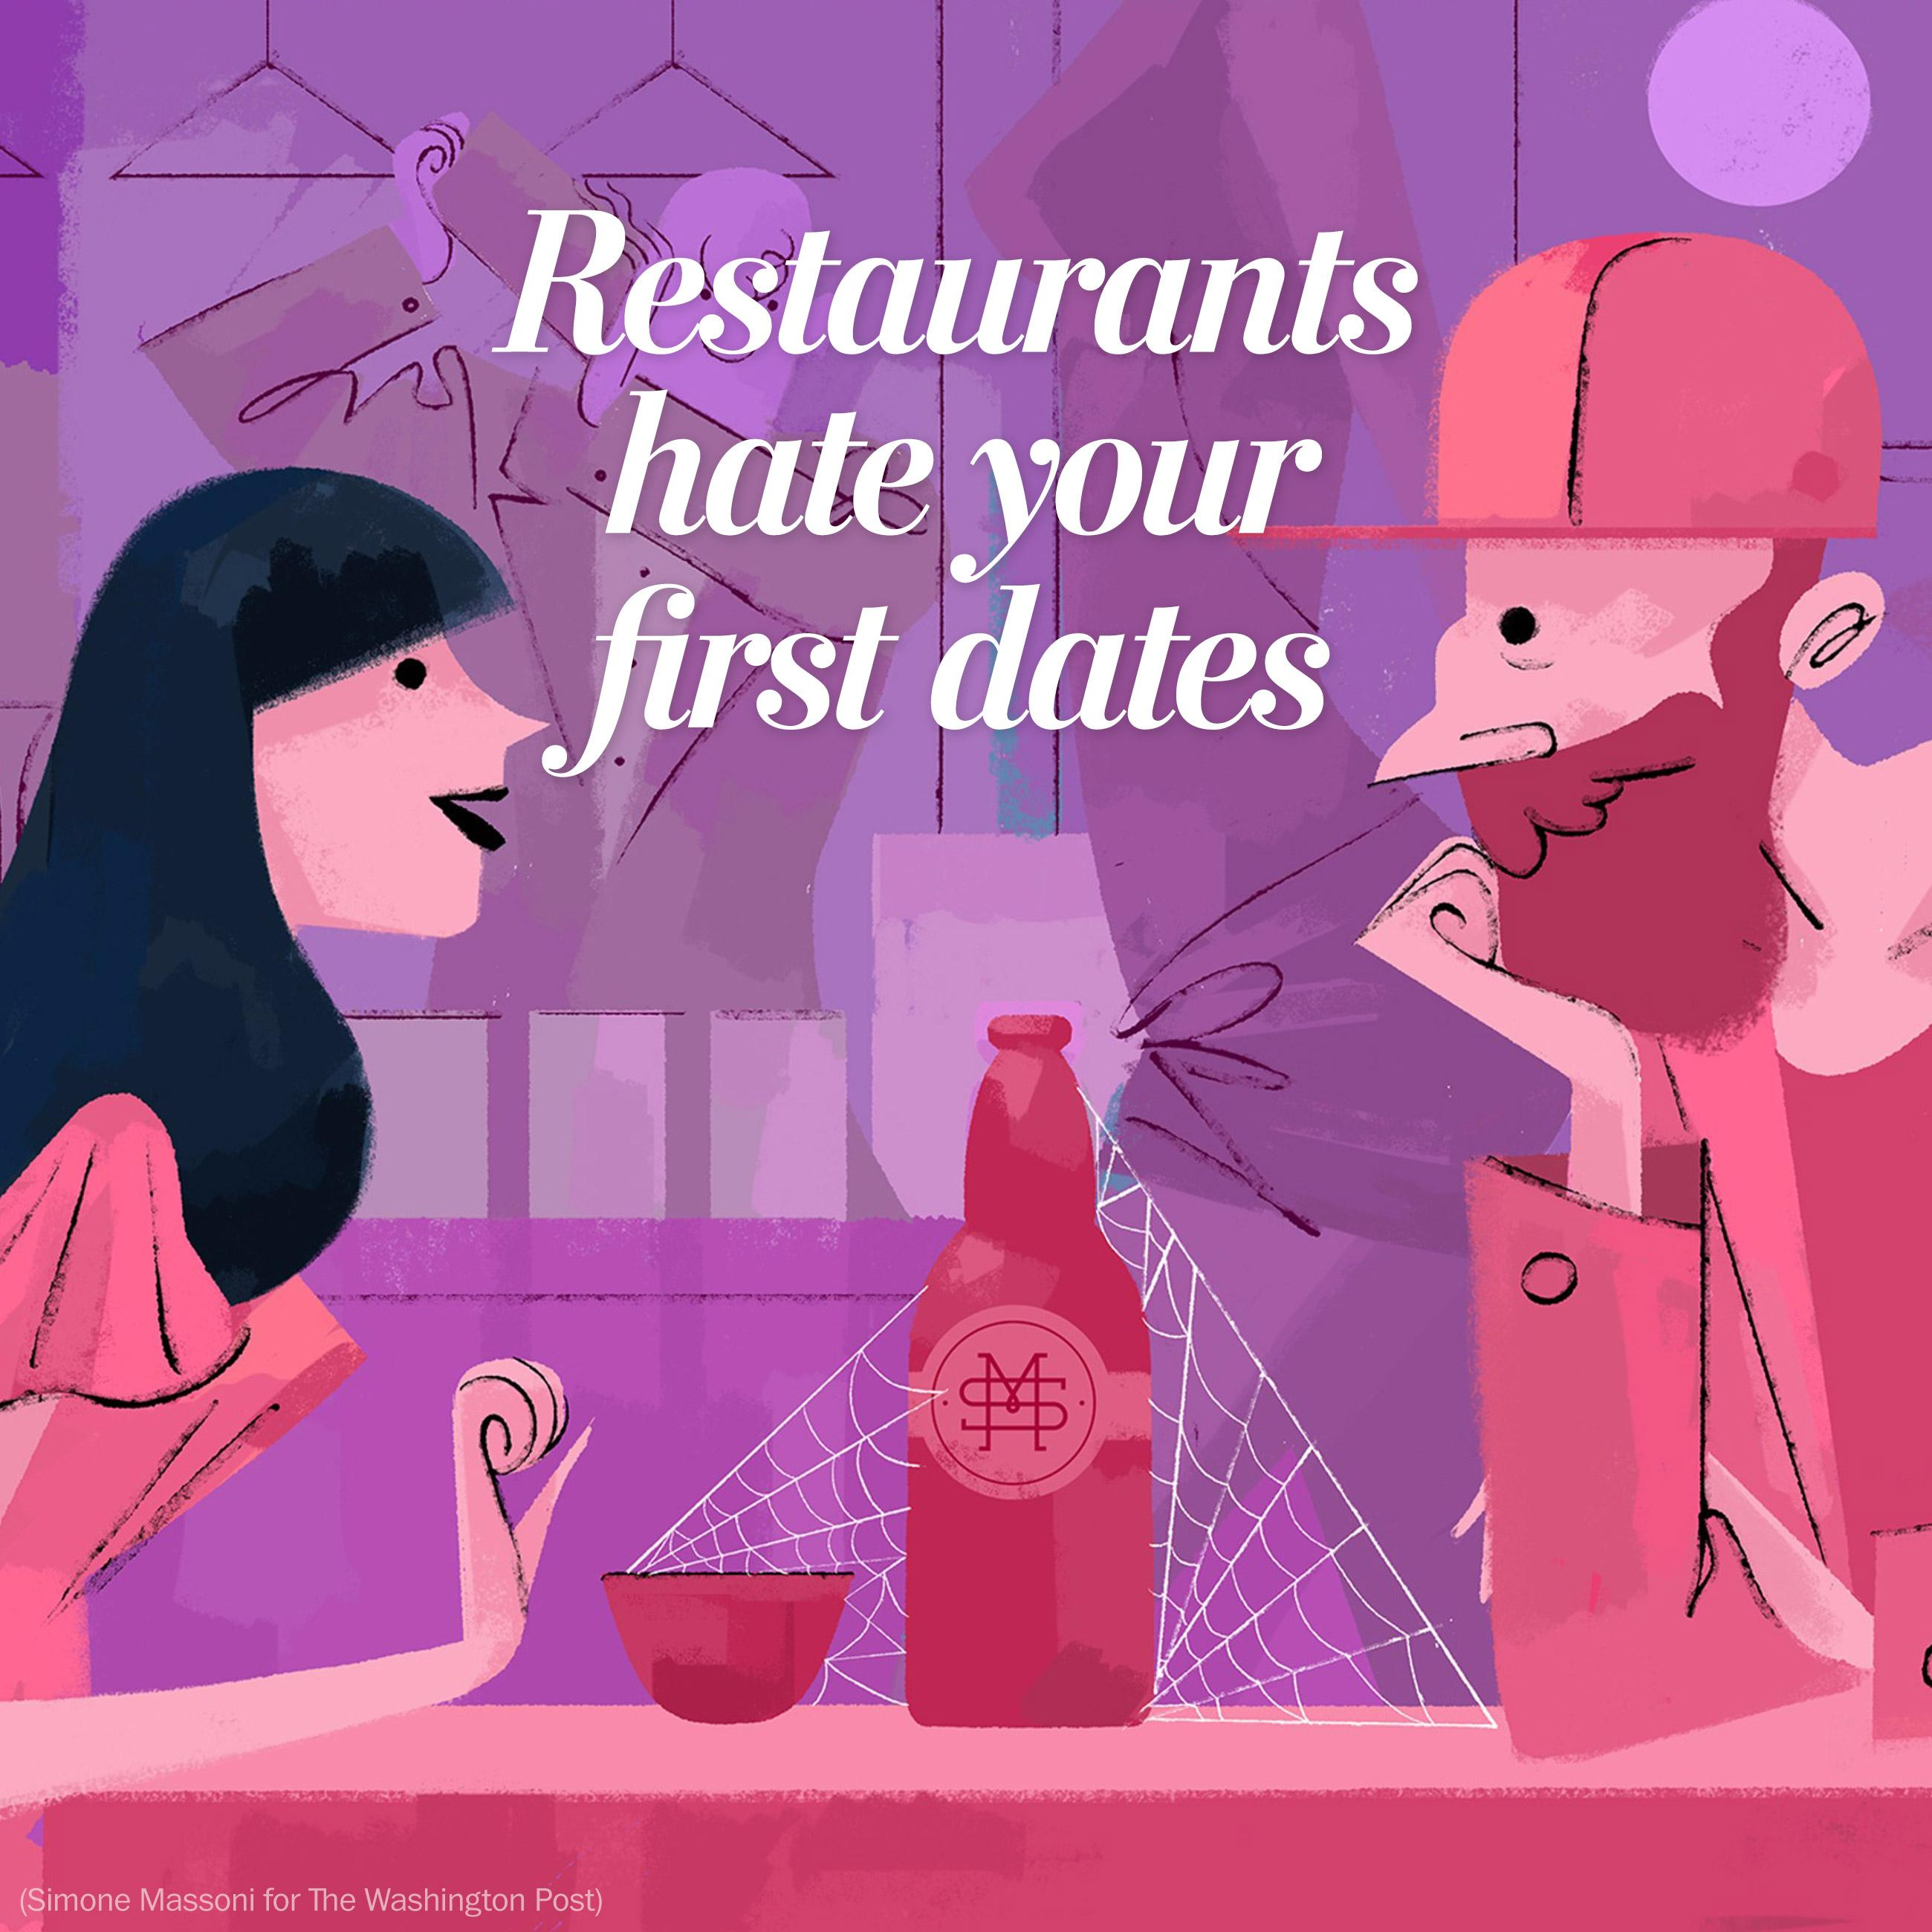 Your romantic first dates? Restaurants hate them.